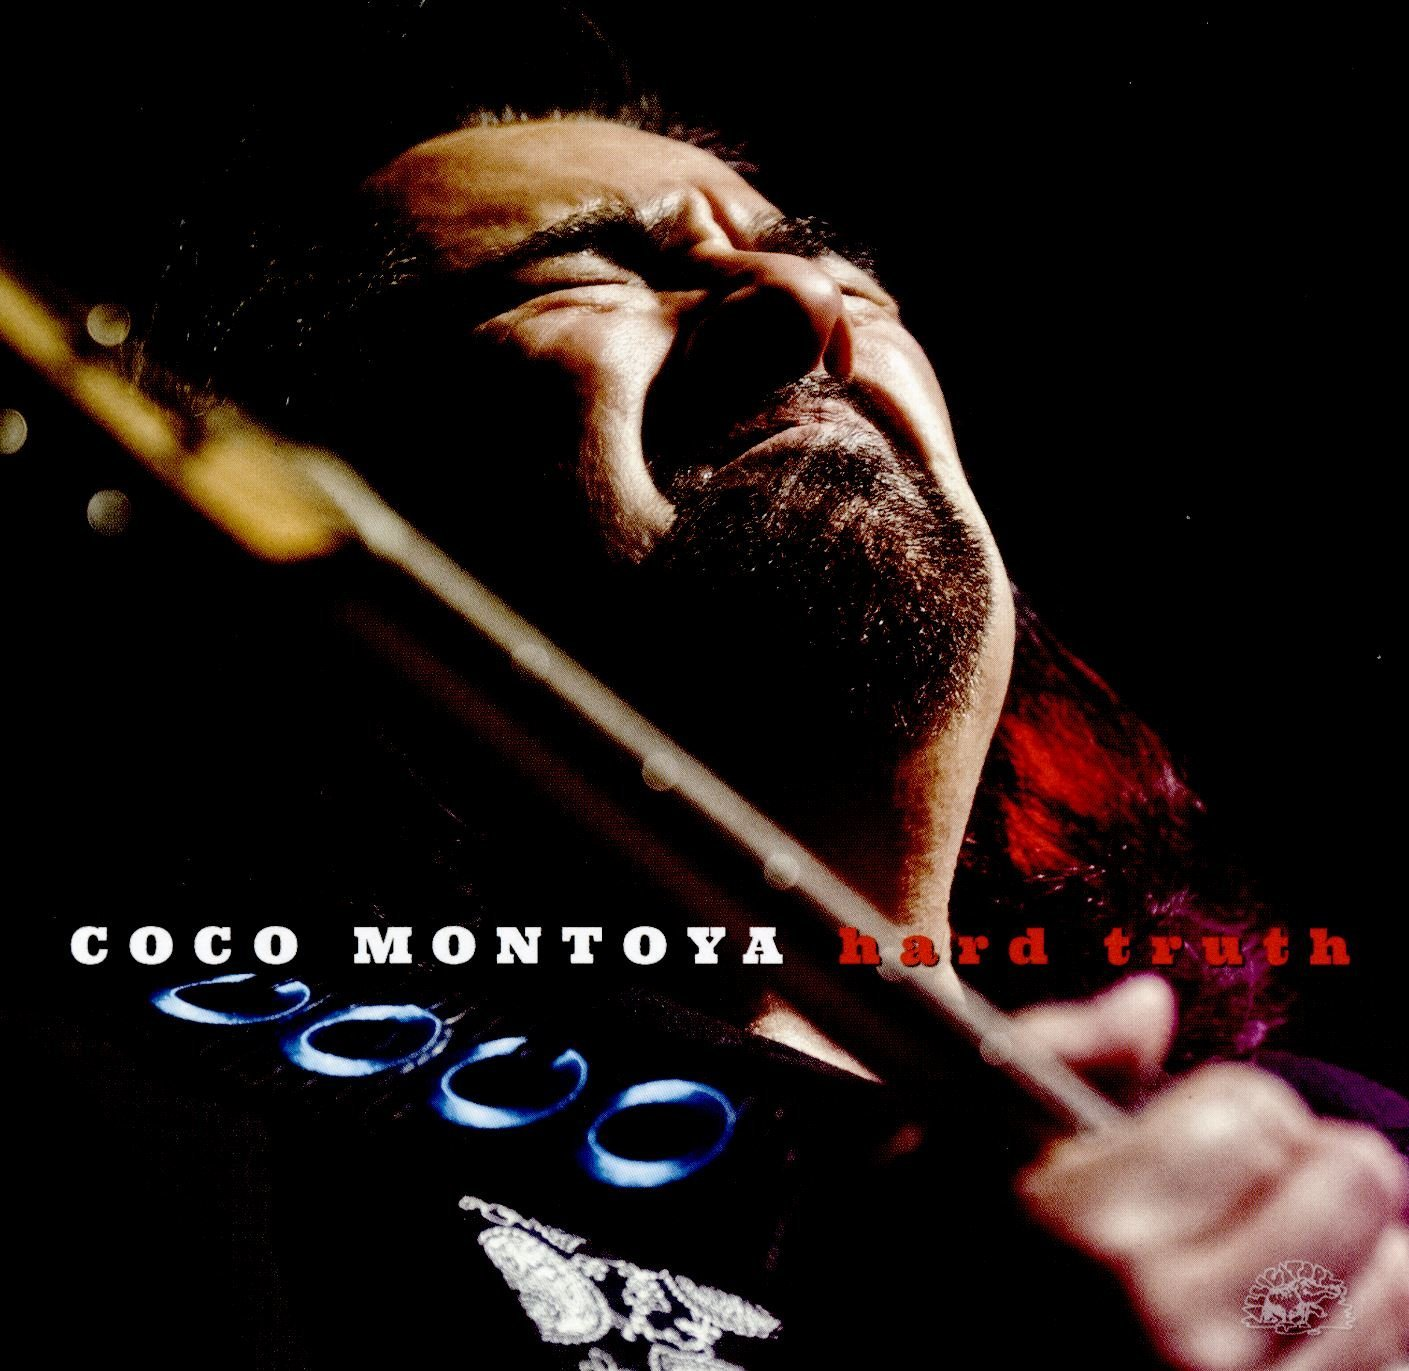 COCO MONTOYA – I want to shout aboutit